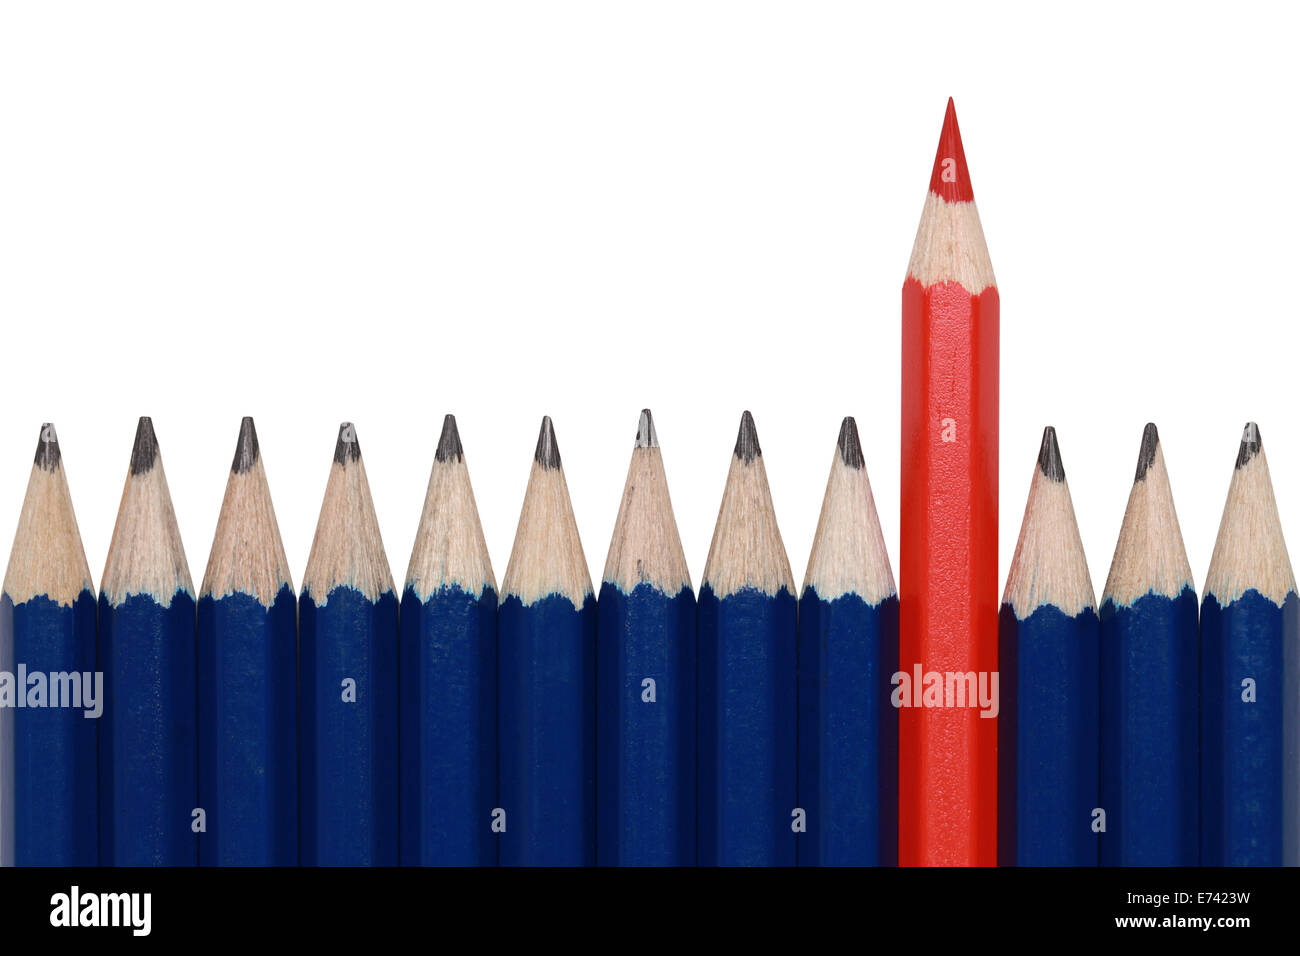 Blue pencils and one red crayon standing out from the crowd. Isolated on white. - Stock Image